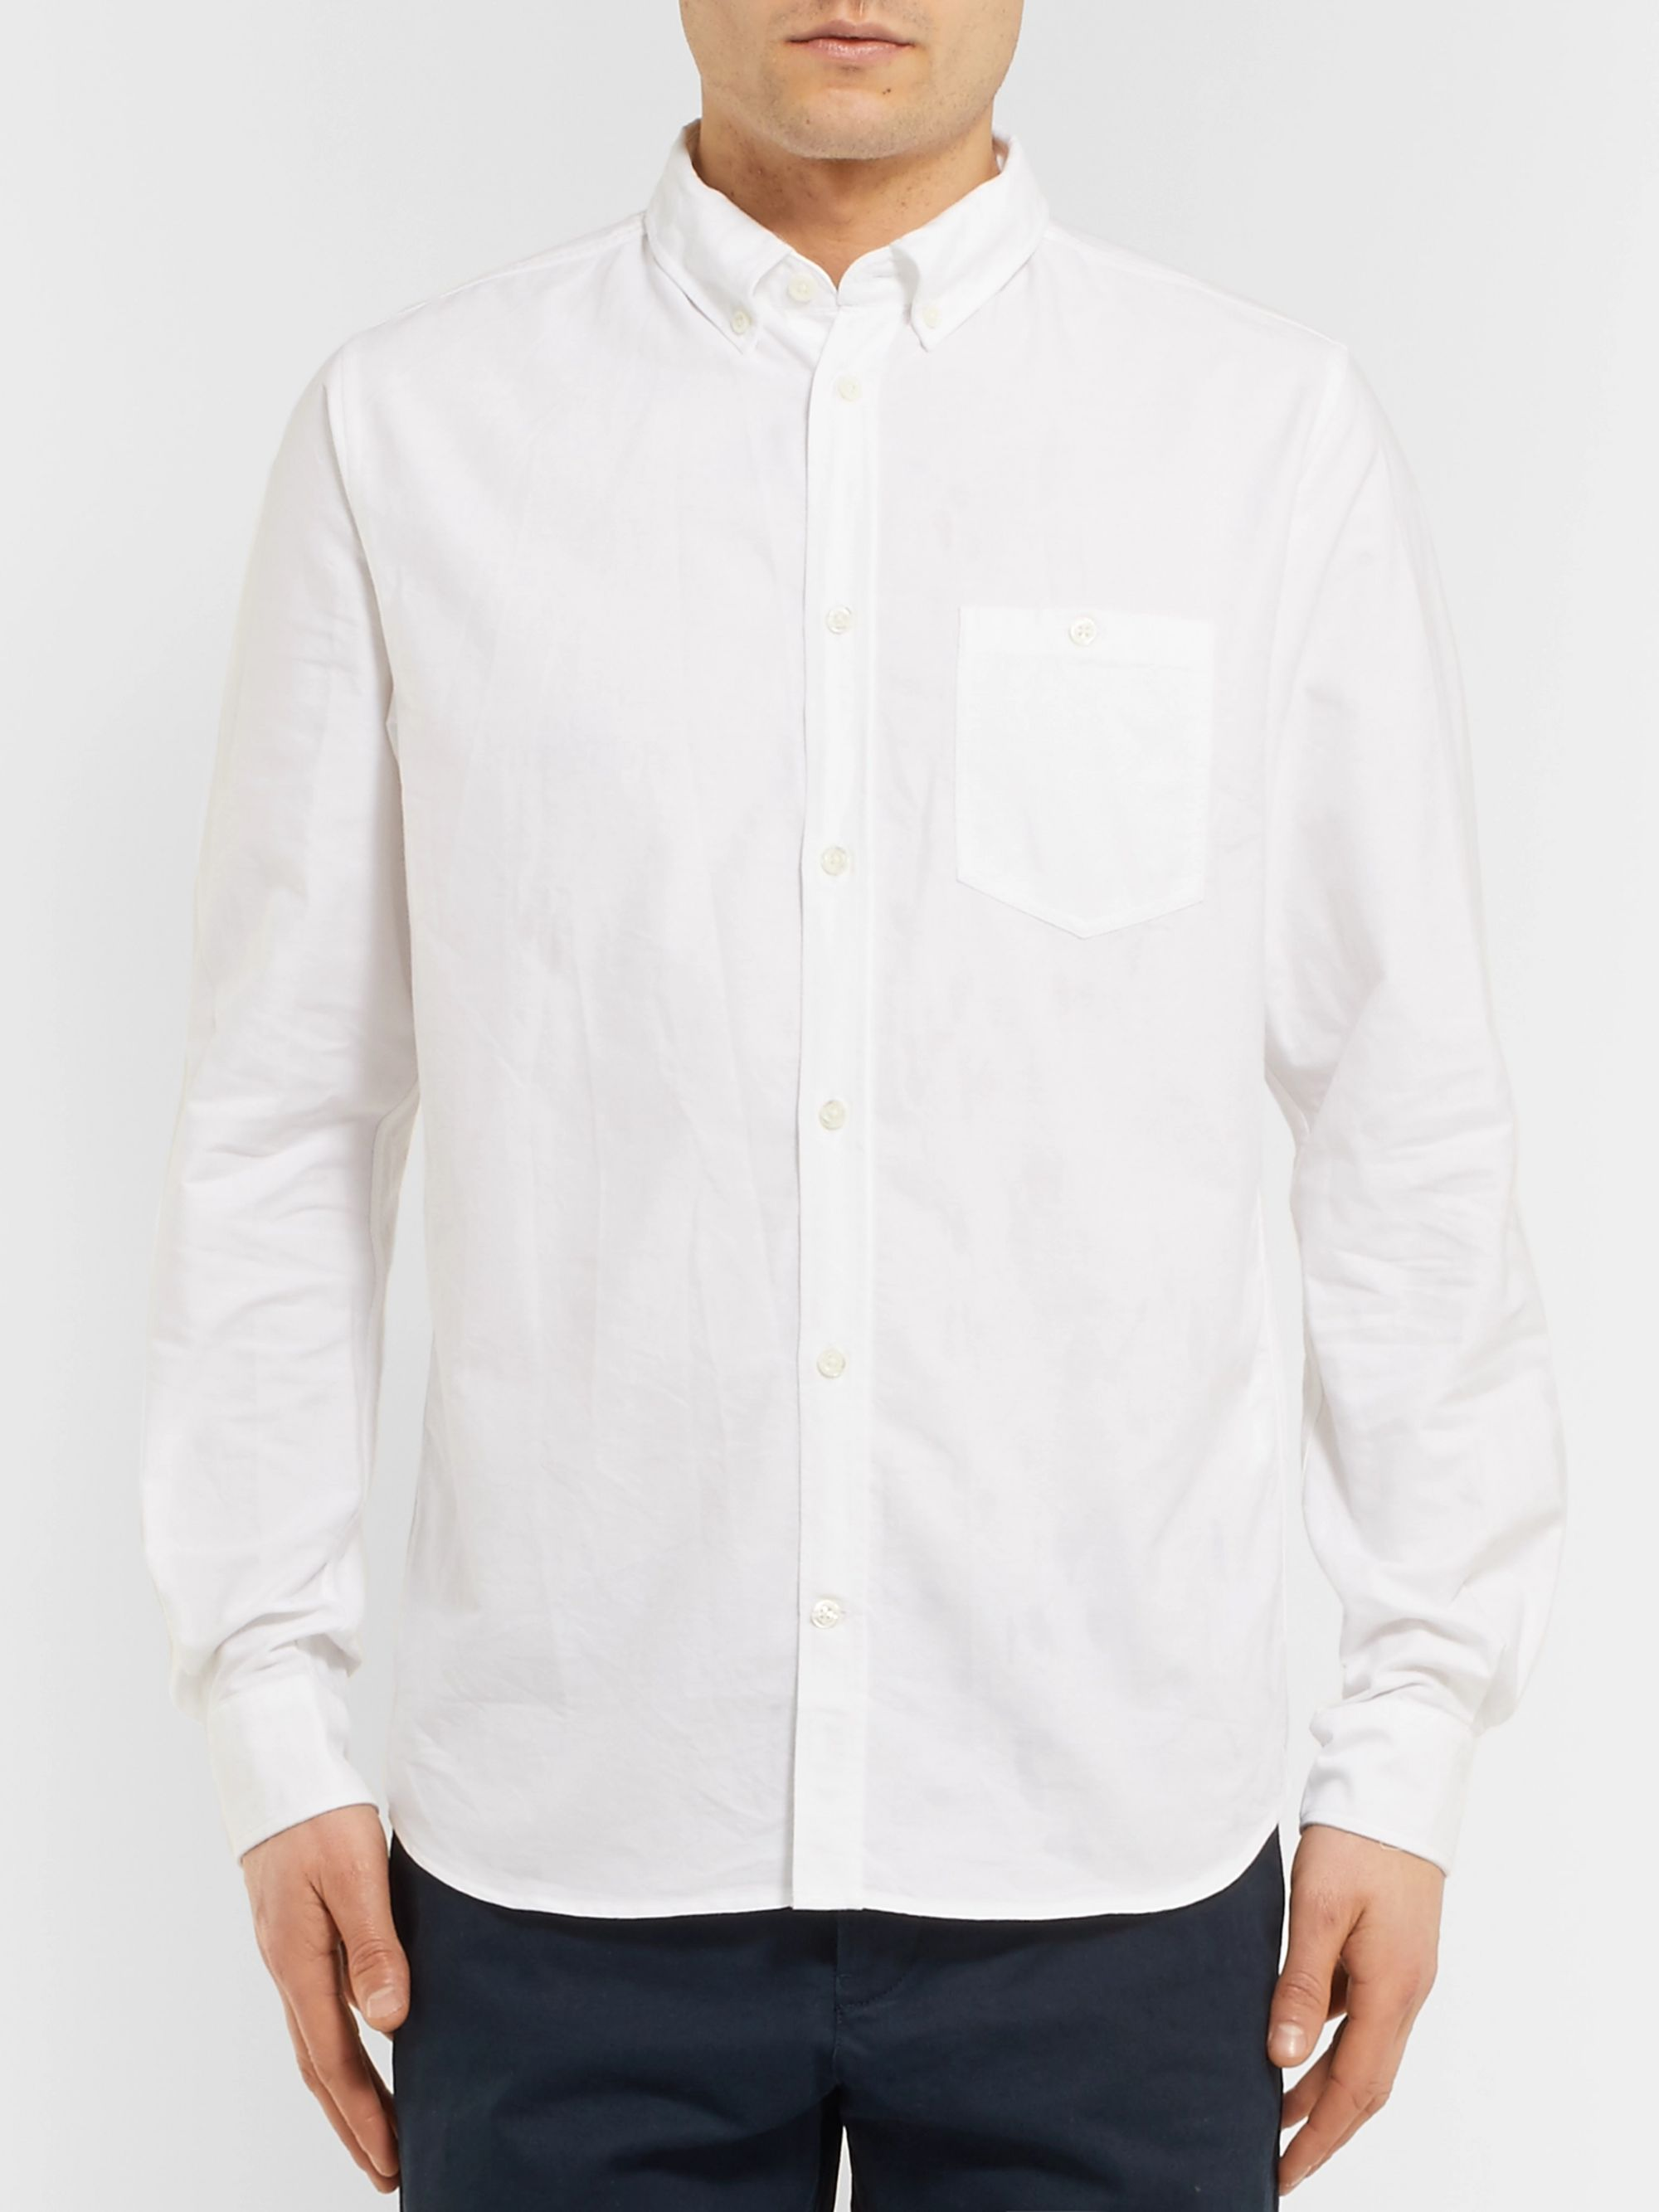 Norse Projects Anton Button-Down Collar Cotton Oxford Shirt